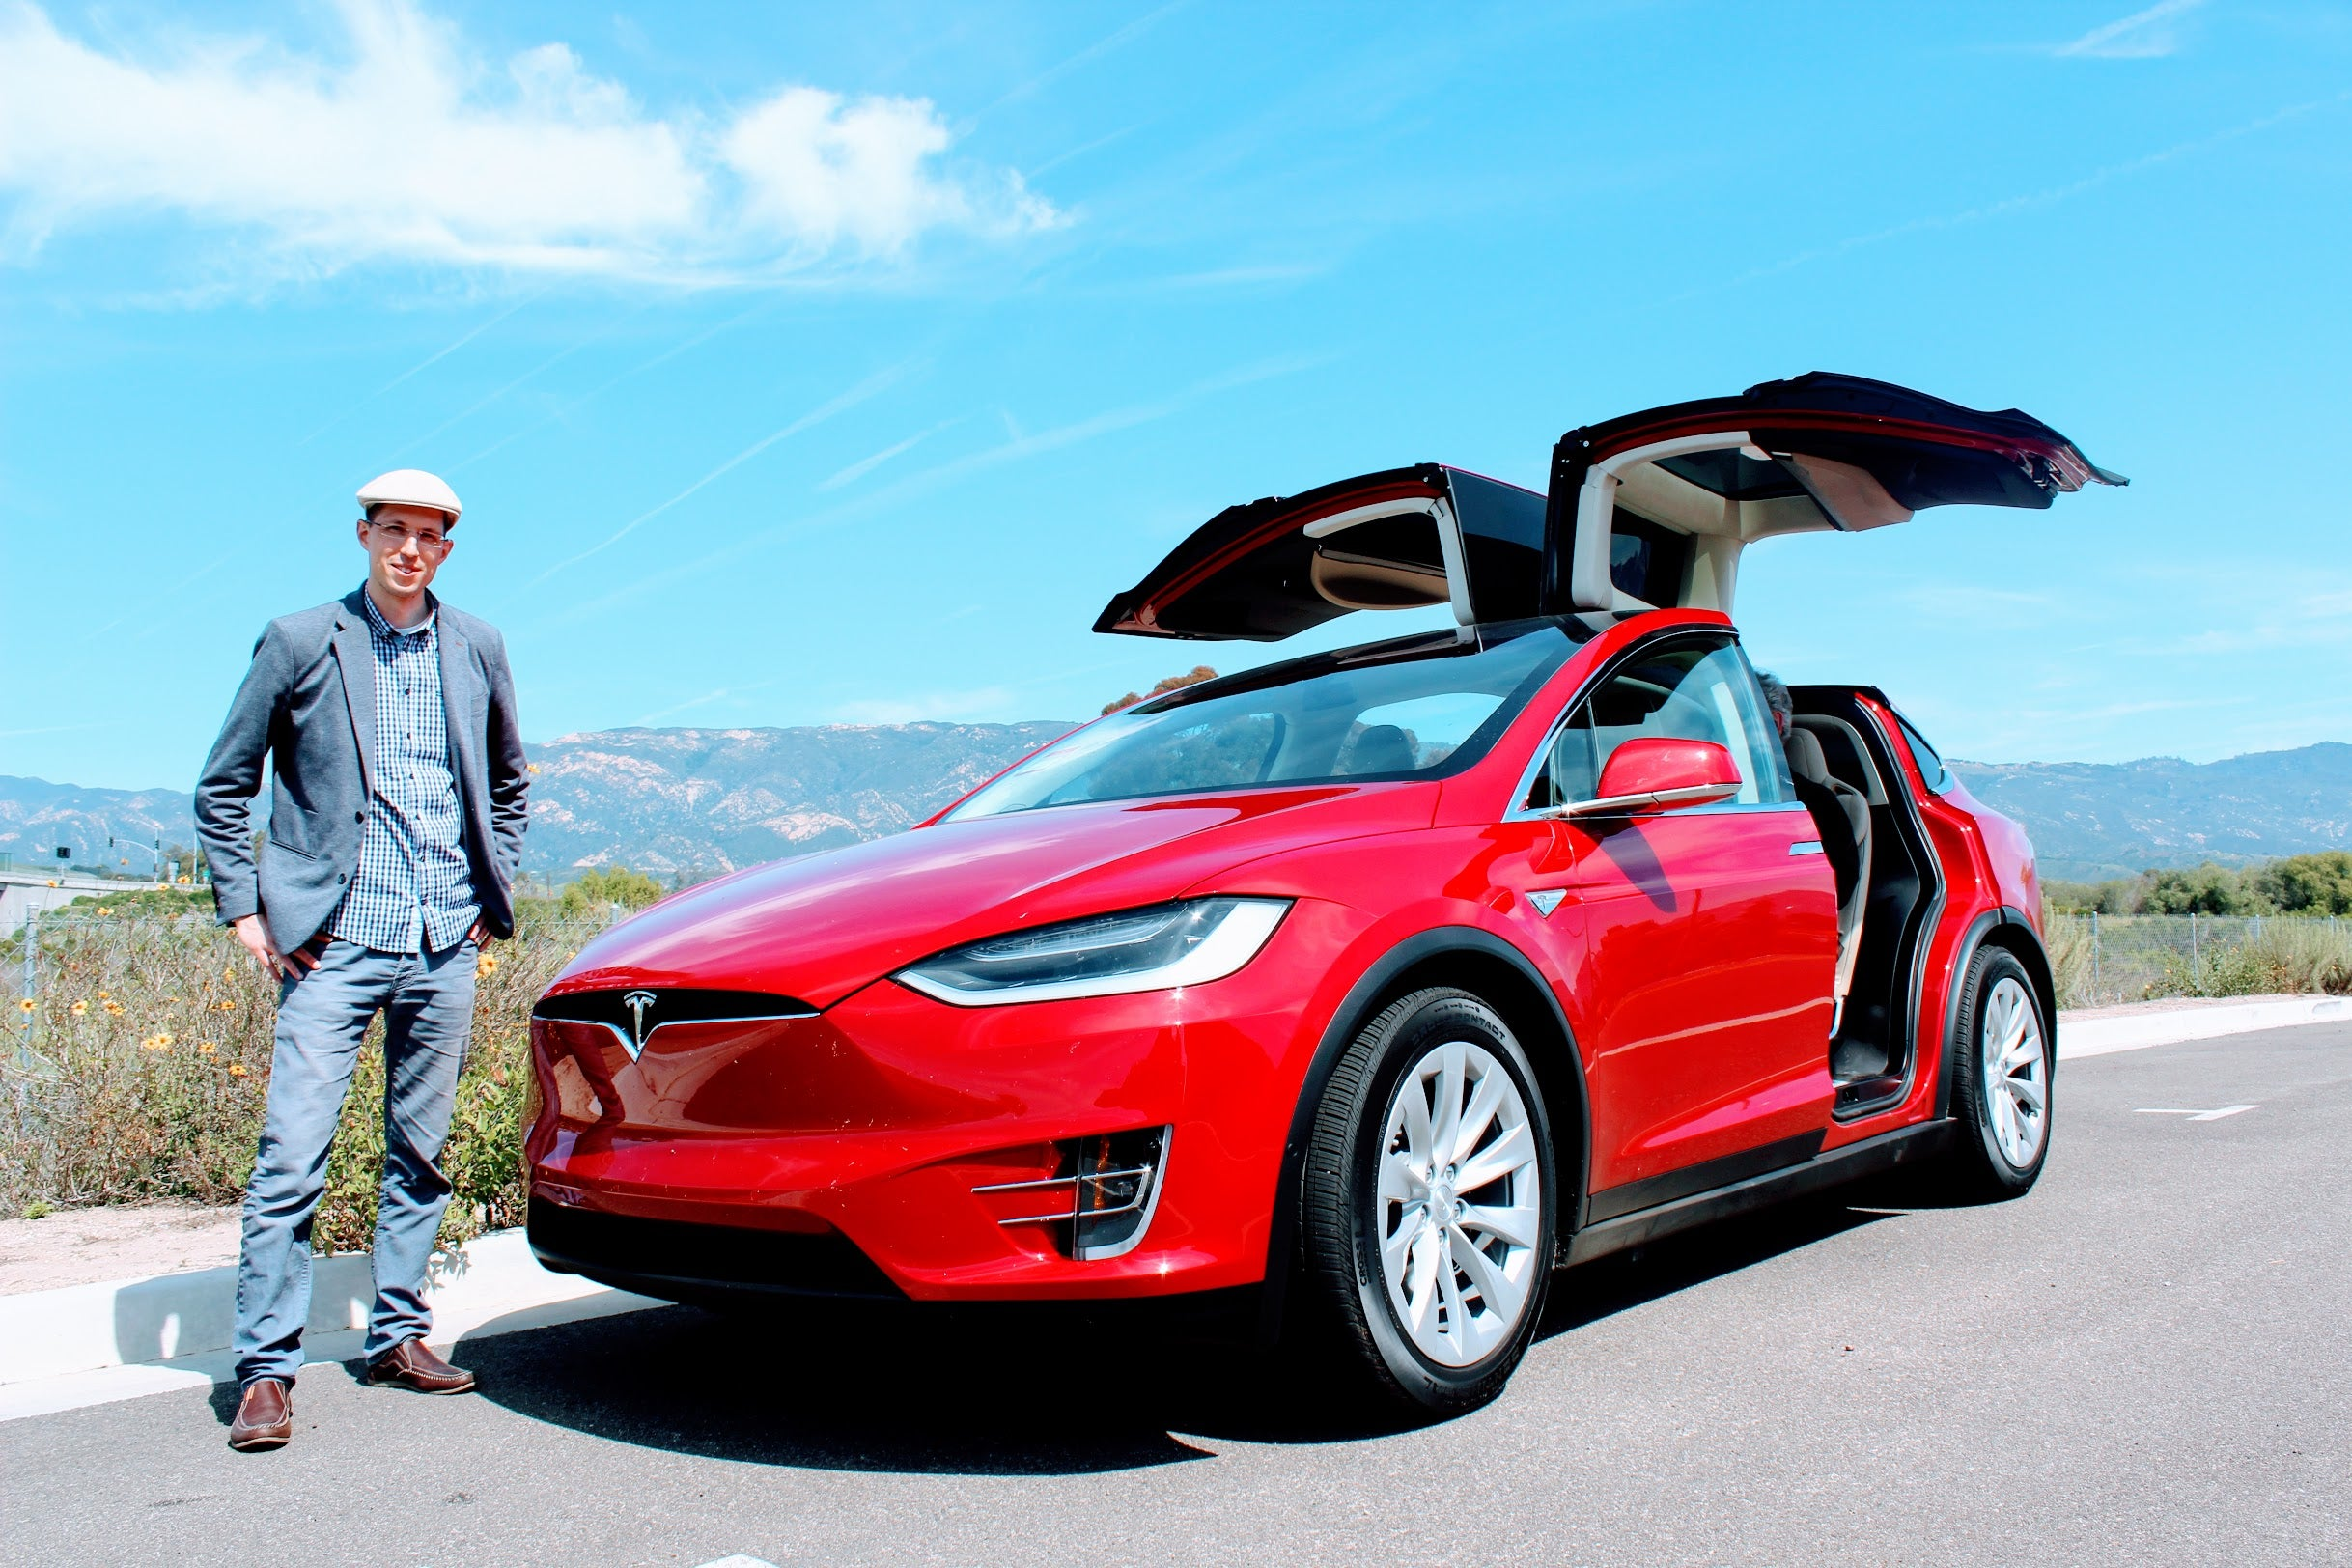 Car Facts Cars for Sale Beautiful Cleantechnica